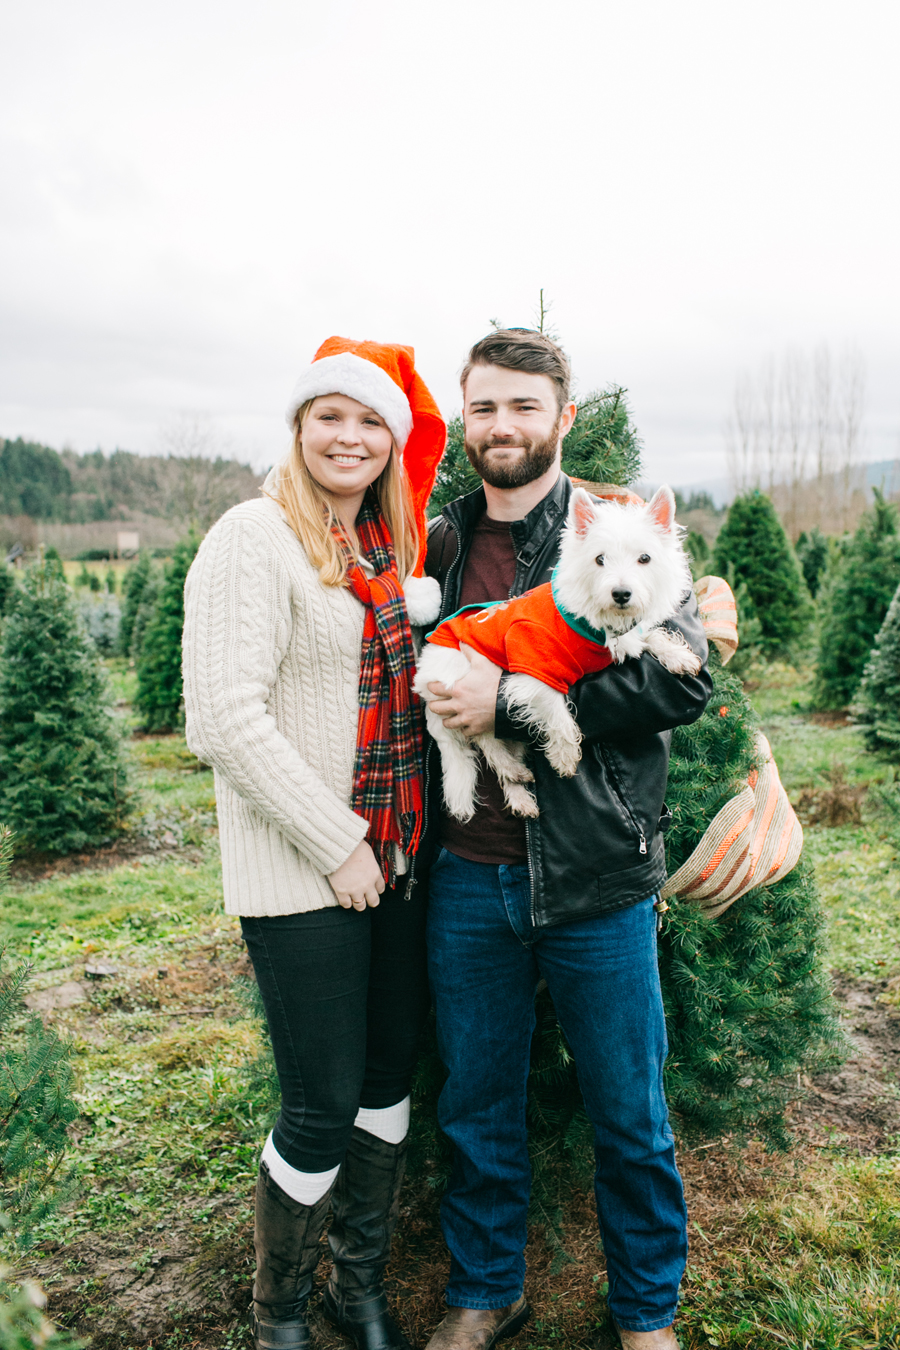 006-fullner-family-christmas-tree-farm-everson-washington-bellingham-family-photographer-katheryn-moran-photography.jpg